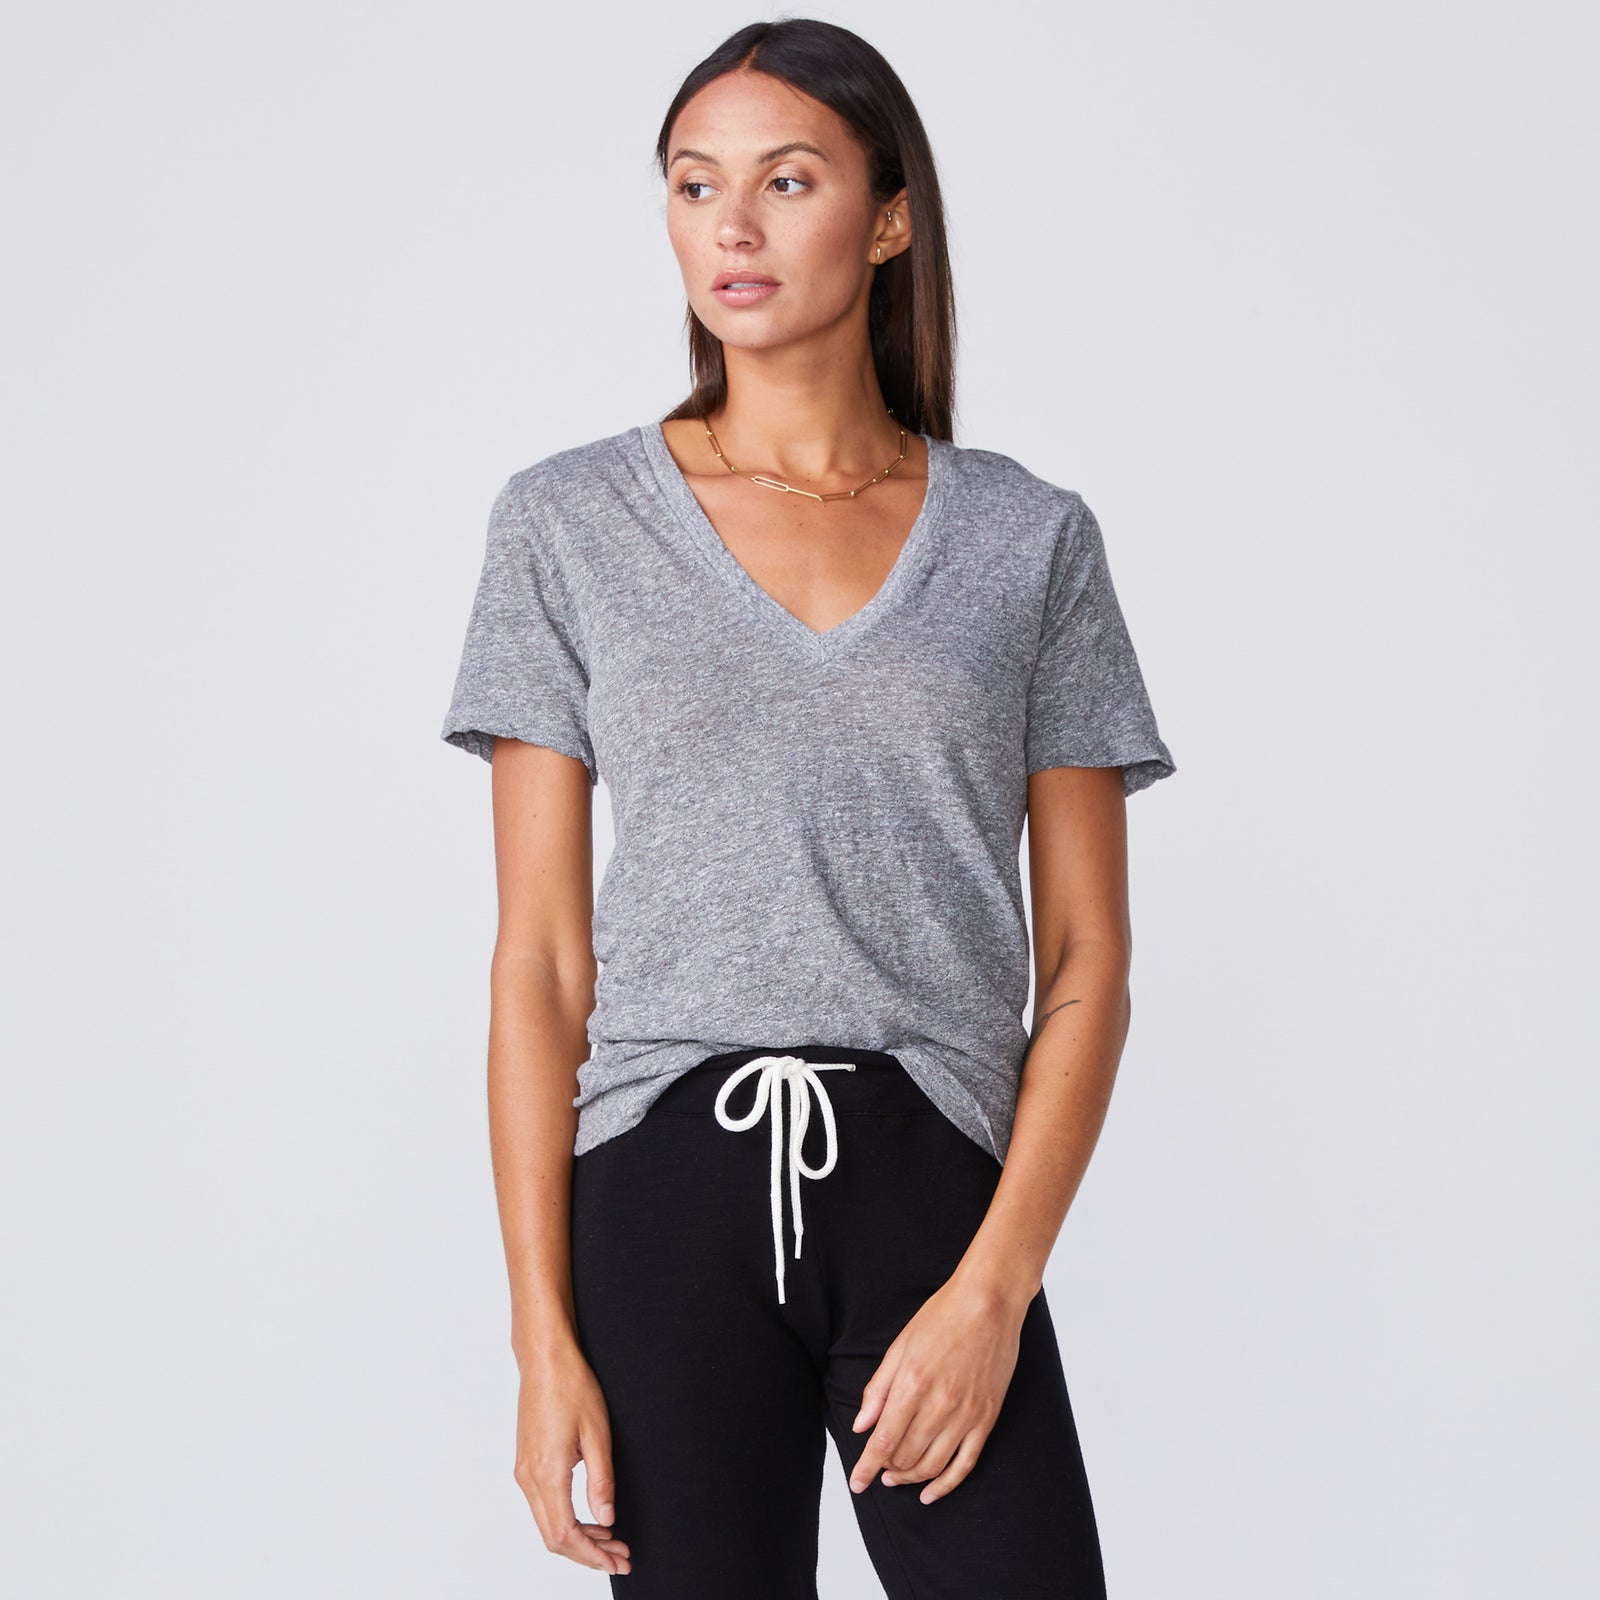 Textured Tri-Blend Fitted V Neck Tee